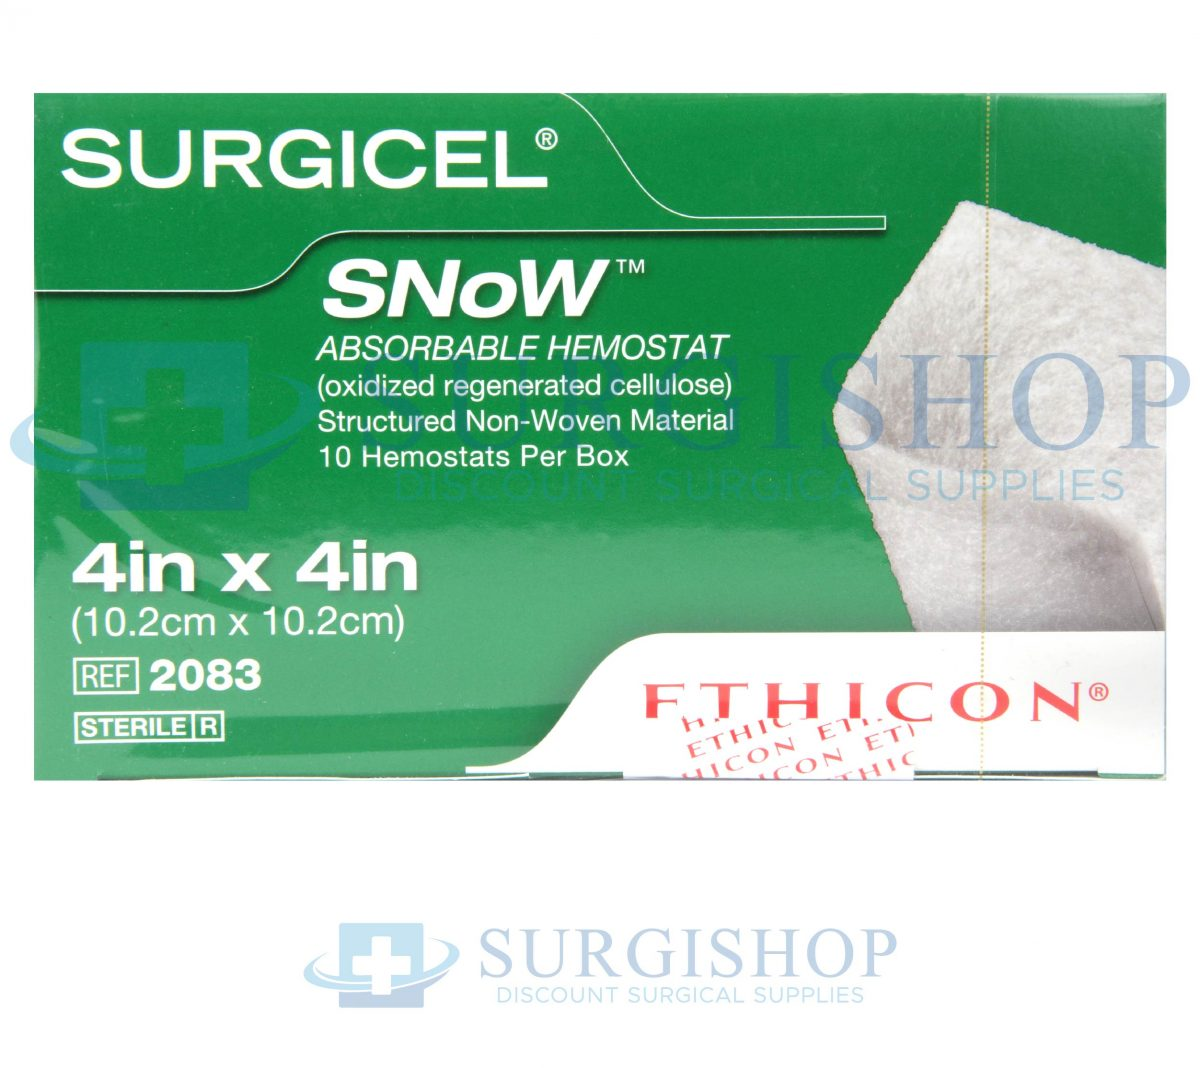 Ethicon Surgicel SNoW Absorbable Hemostat